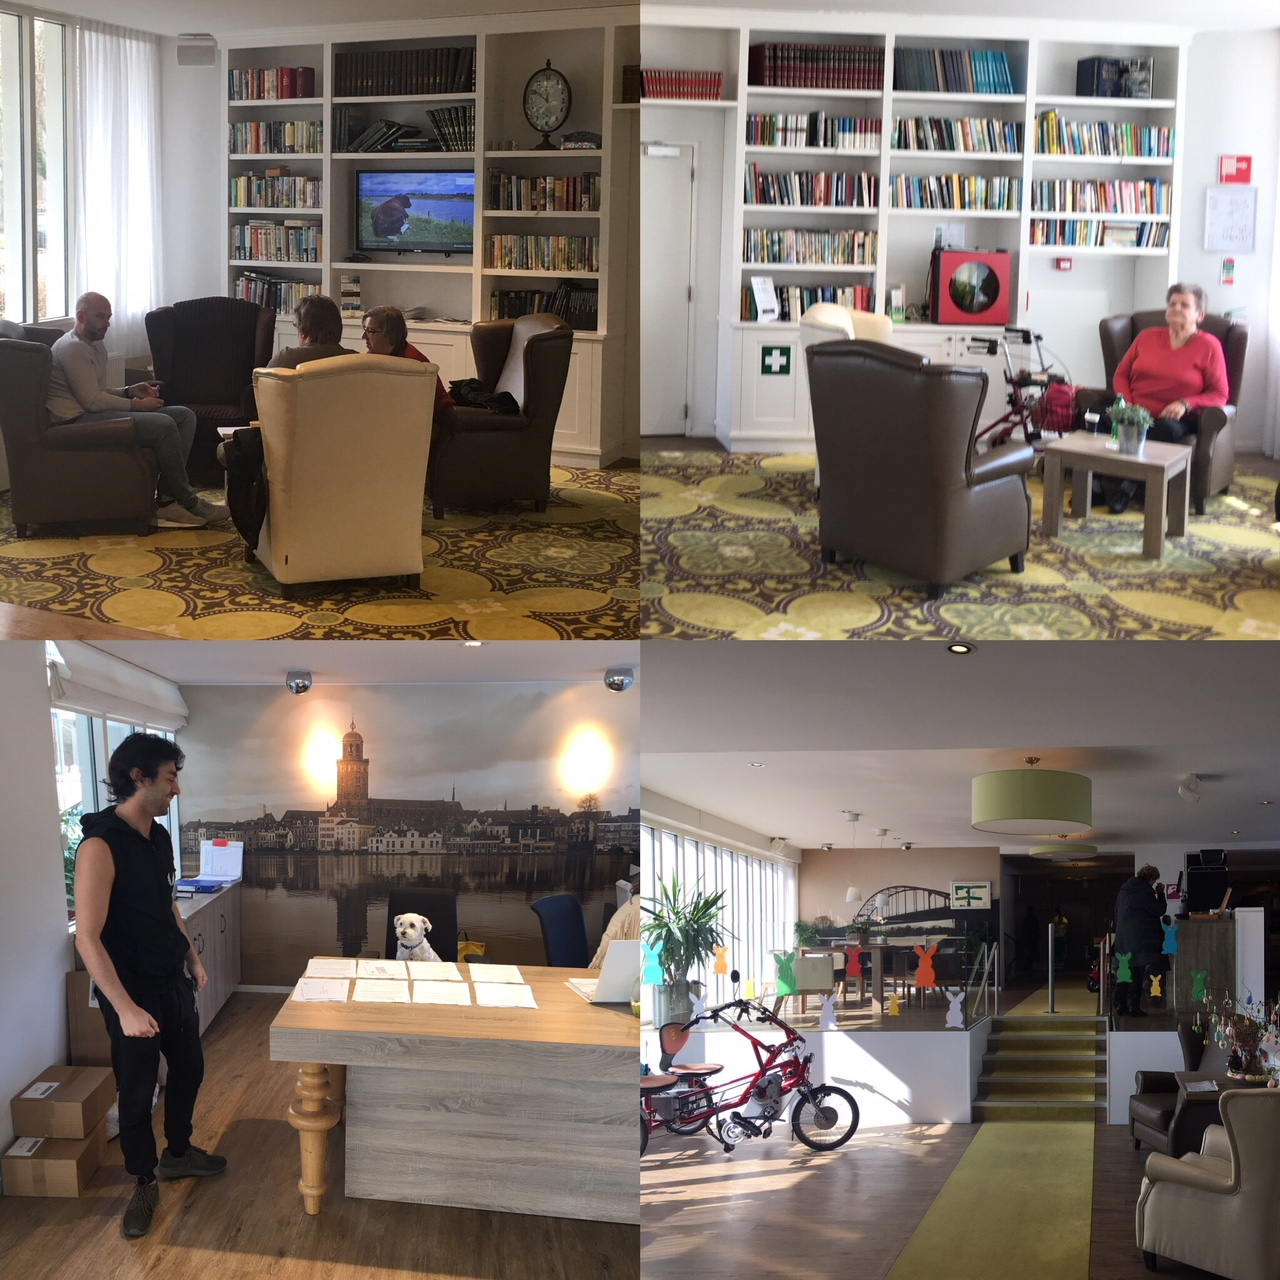 Top left: Patrick, a student, talking with several of the elderly residents. Top right, when you walk in the seating area and bookcase to the right. Bottom Left: Sores saying hello to Benji (the dog) at the front test. Bottom right, coffee machine and seating area when you first walk in.